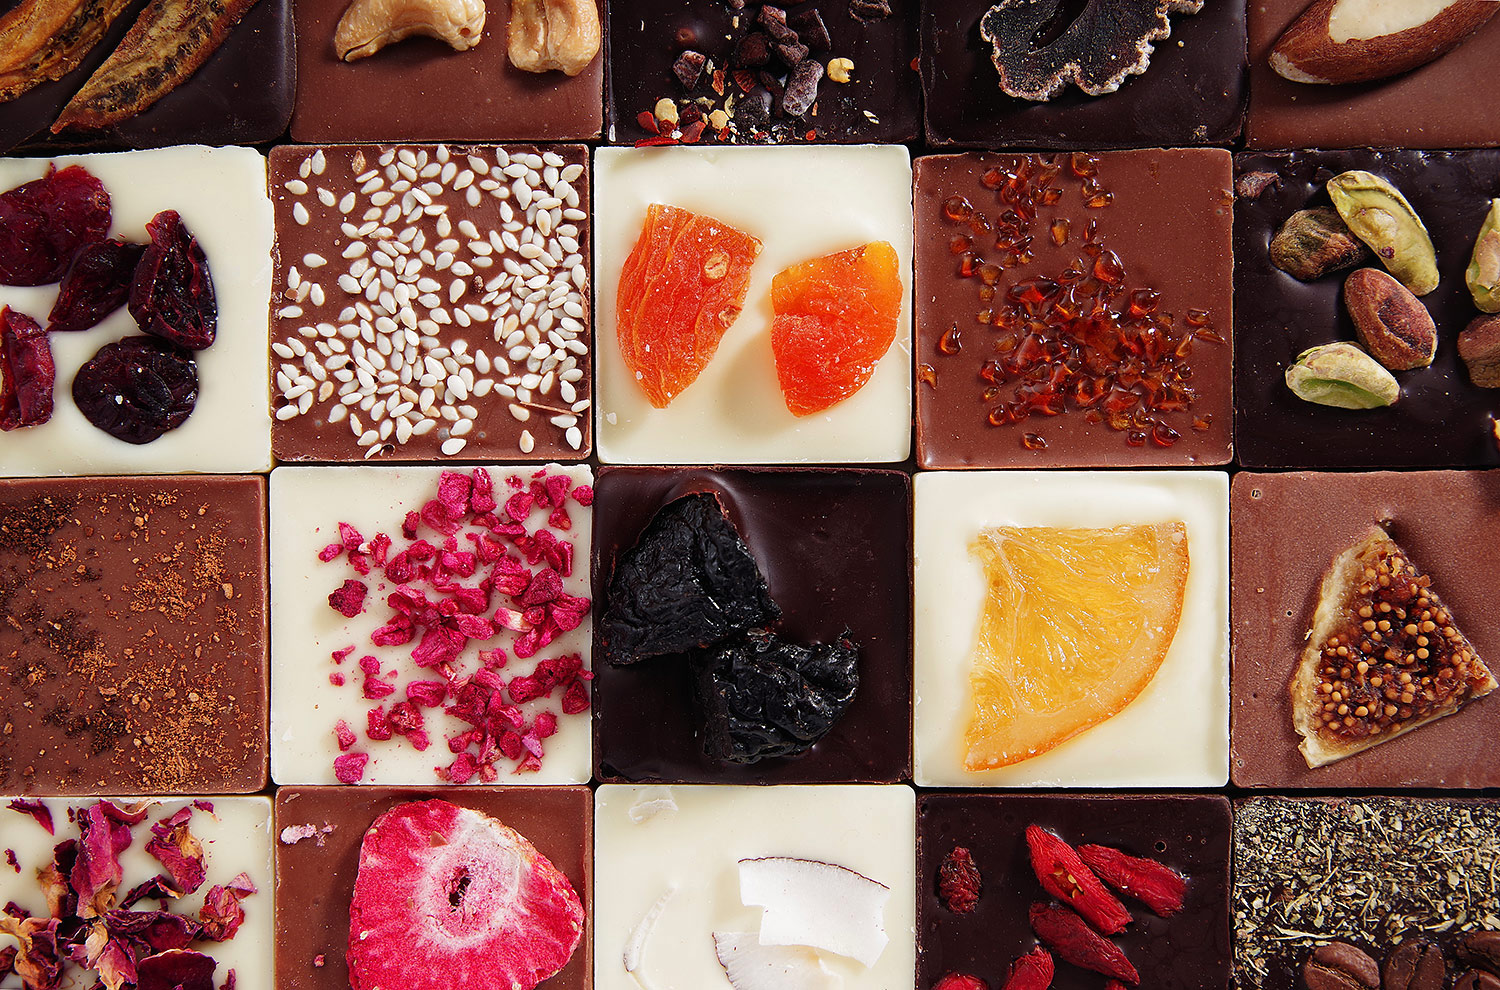 Chocolate background mix: white, black and milk chocolate and unique fillings. Chocolate with raspberries, dried cranberries or a slice of orange, chocolate with salted pistachios, strawberries or rose petals. 20 flavors for 2020.